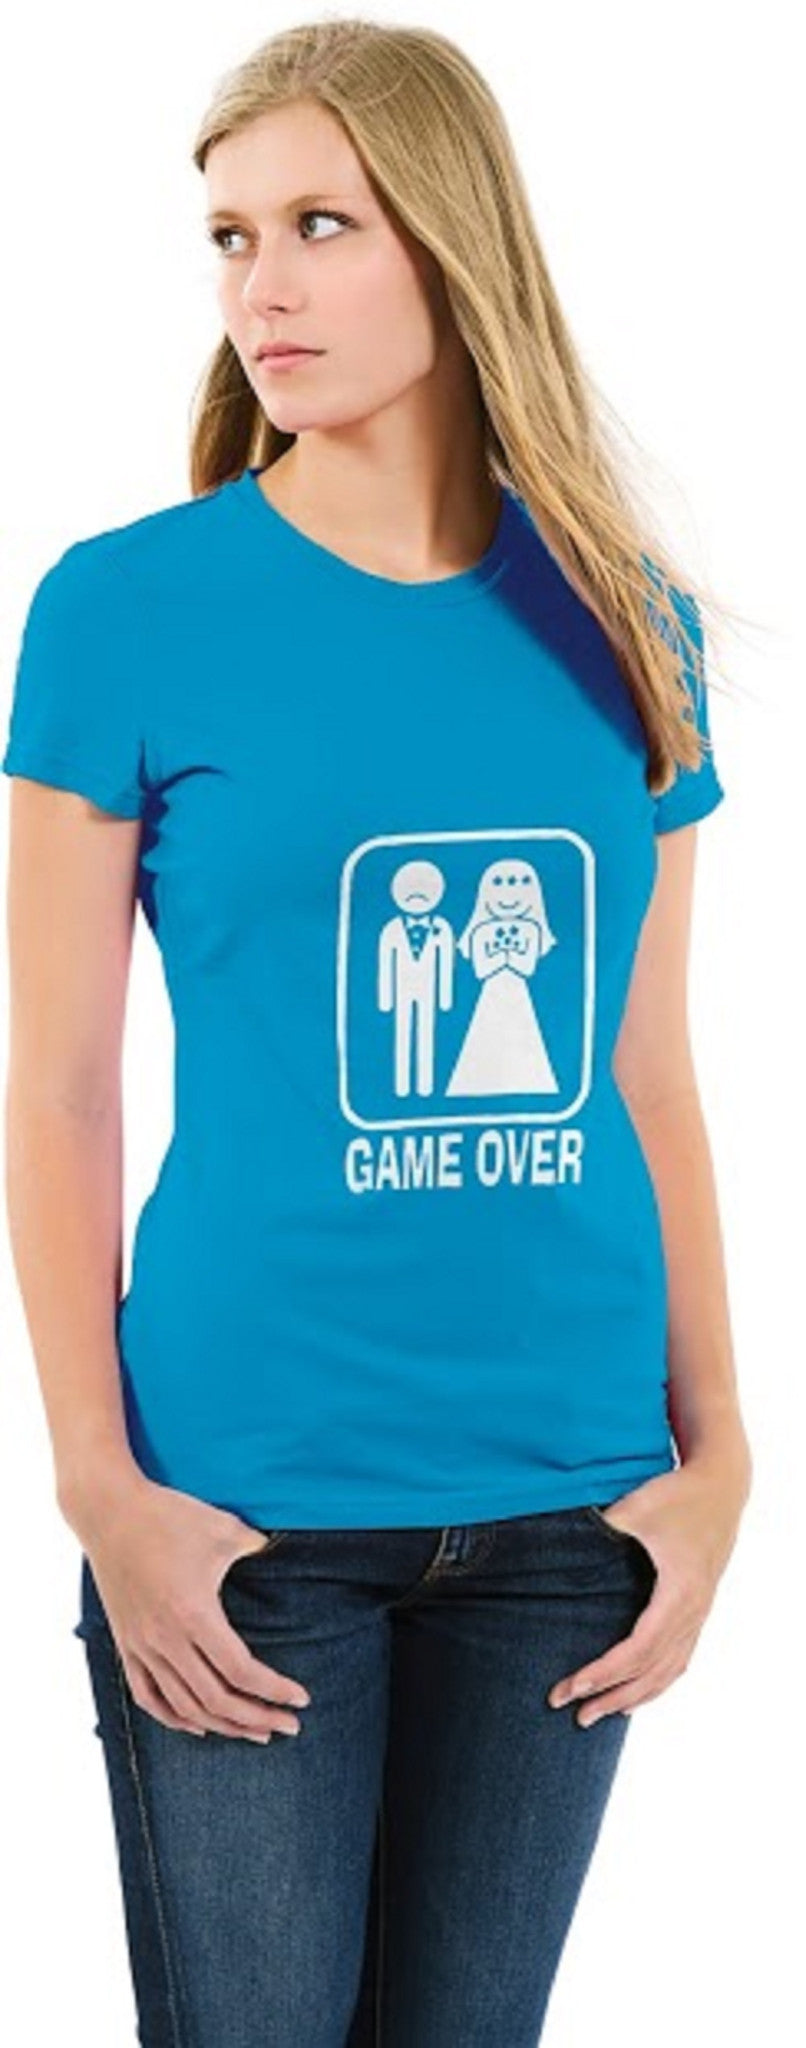 Game Over Ladies T-shirt Blue